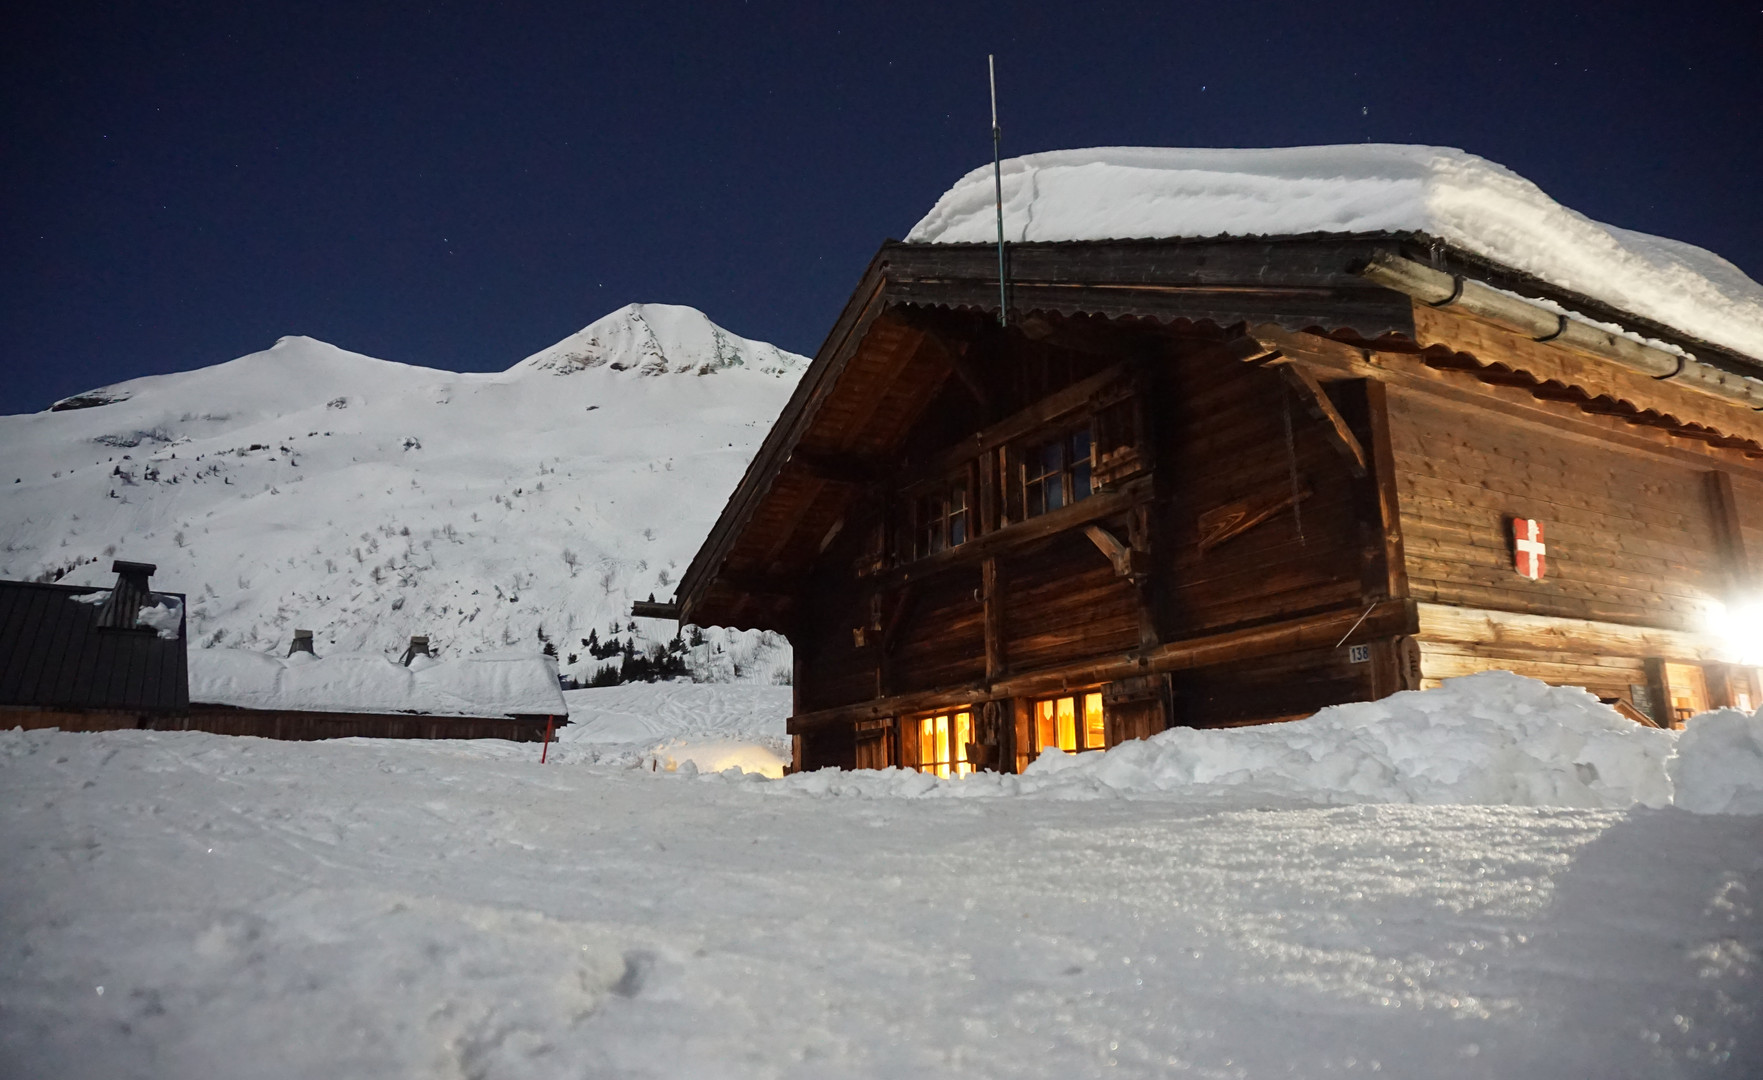 refuge megeve hc-events